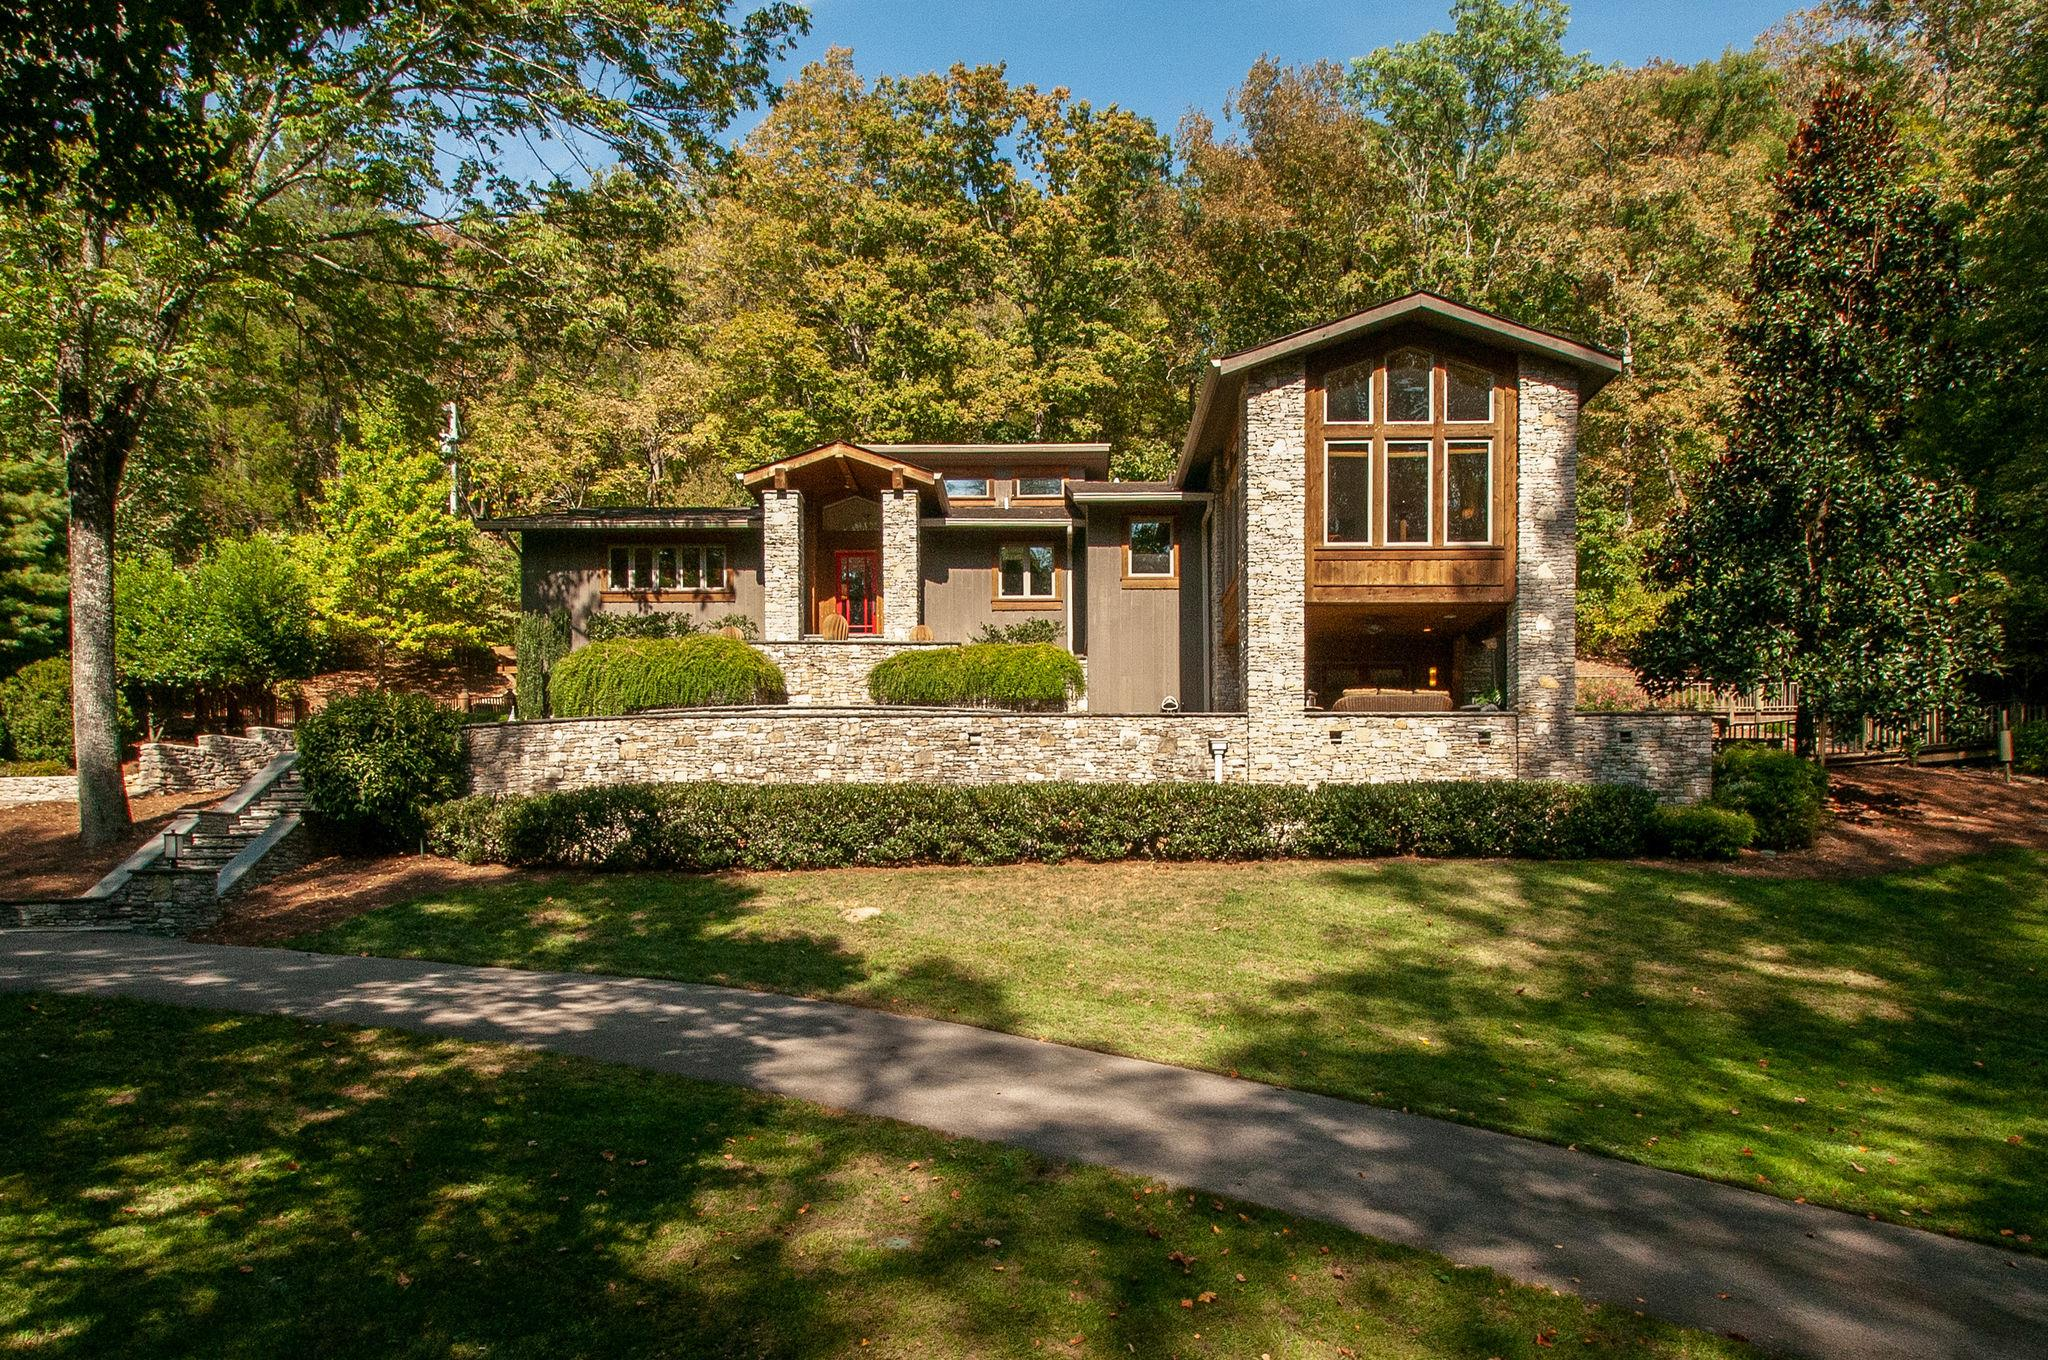 7741 Indian Springs Dr, Bellevue, Tennessee